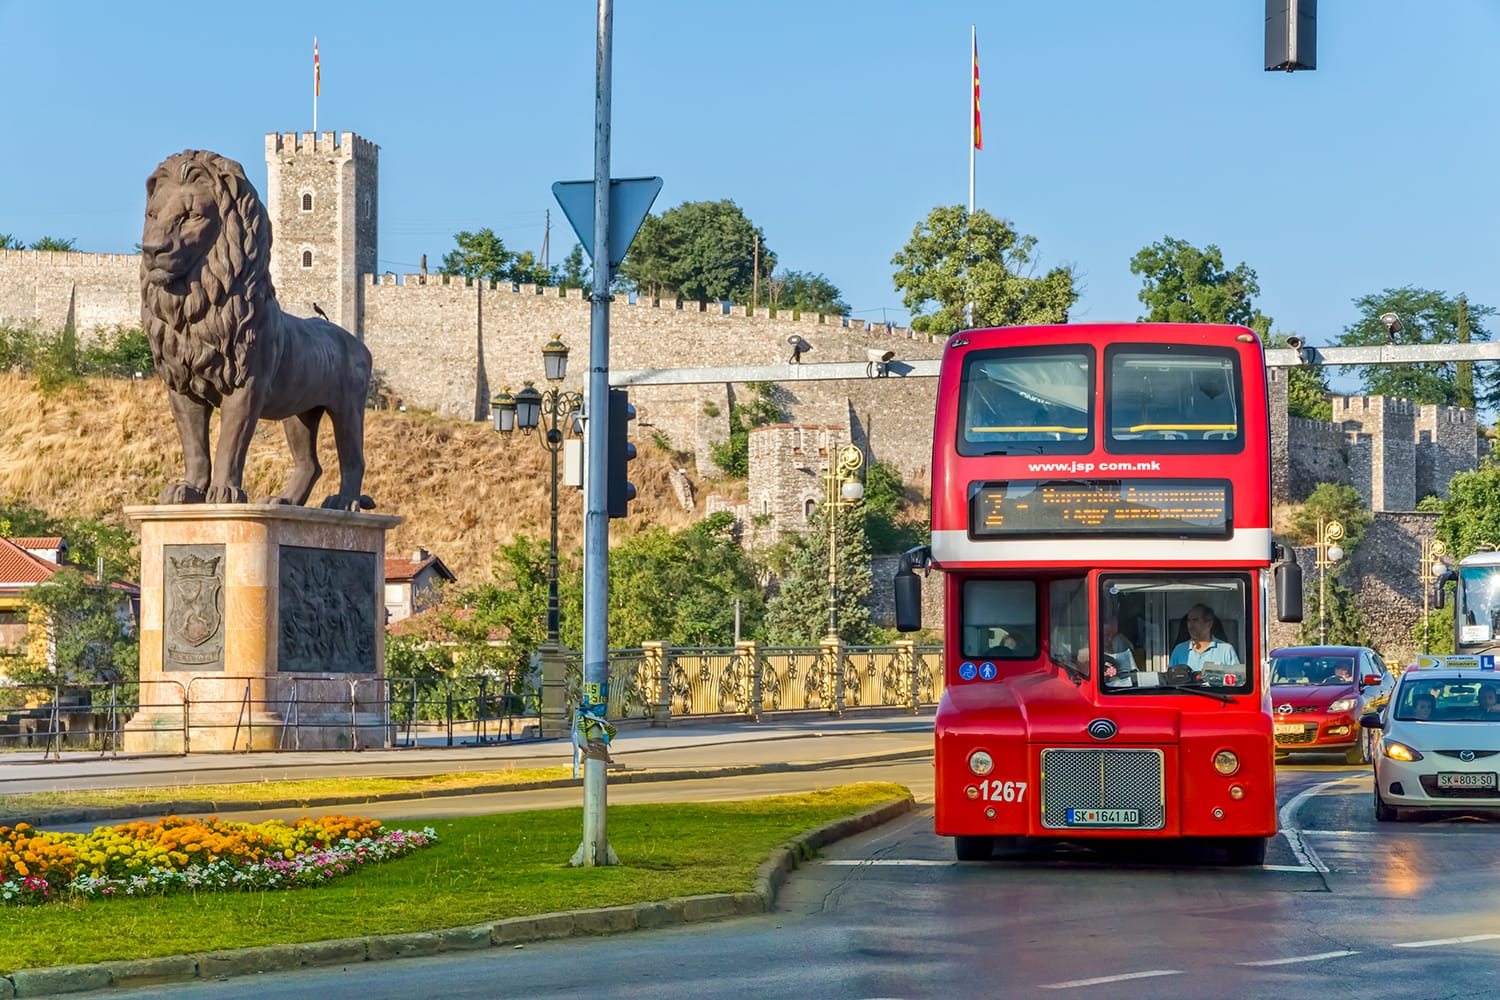 Double decker red bus in Skopje, Macedonia